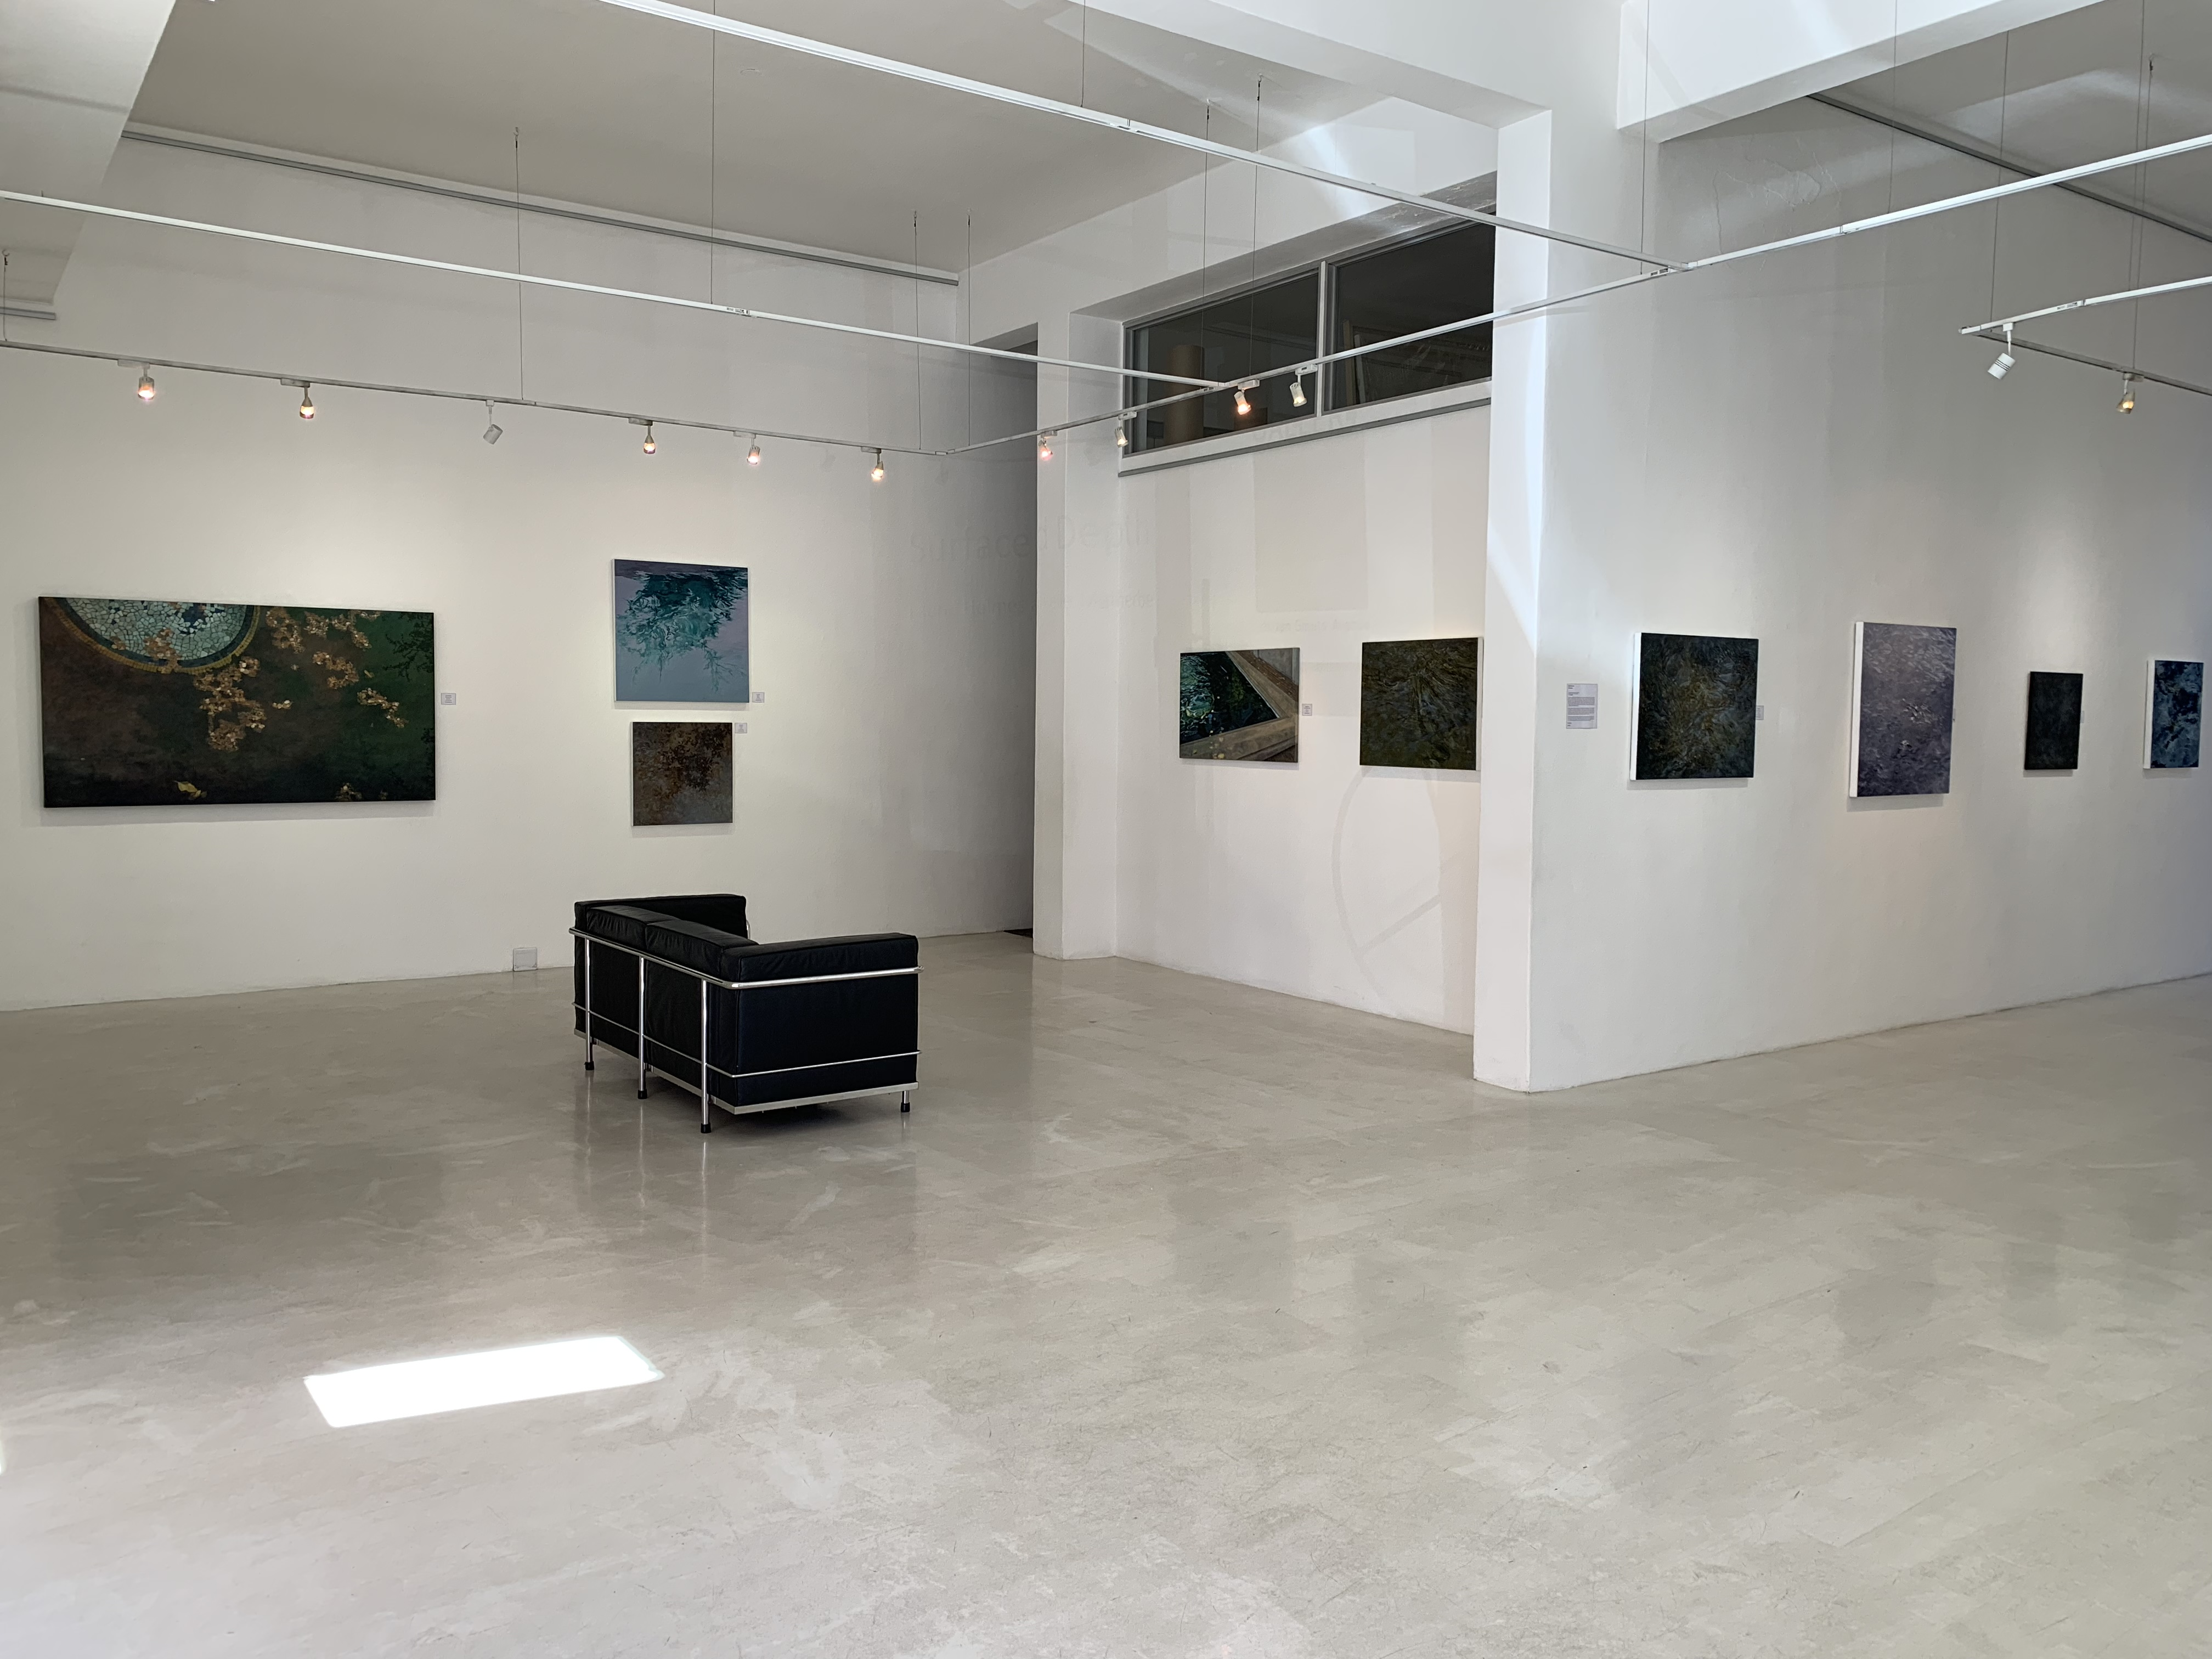 Laurel Holmes and Danielle Malherbe Exhibition